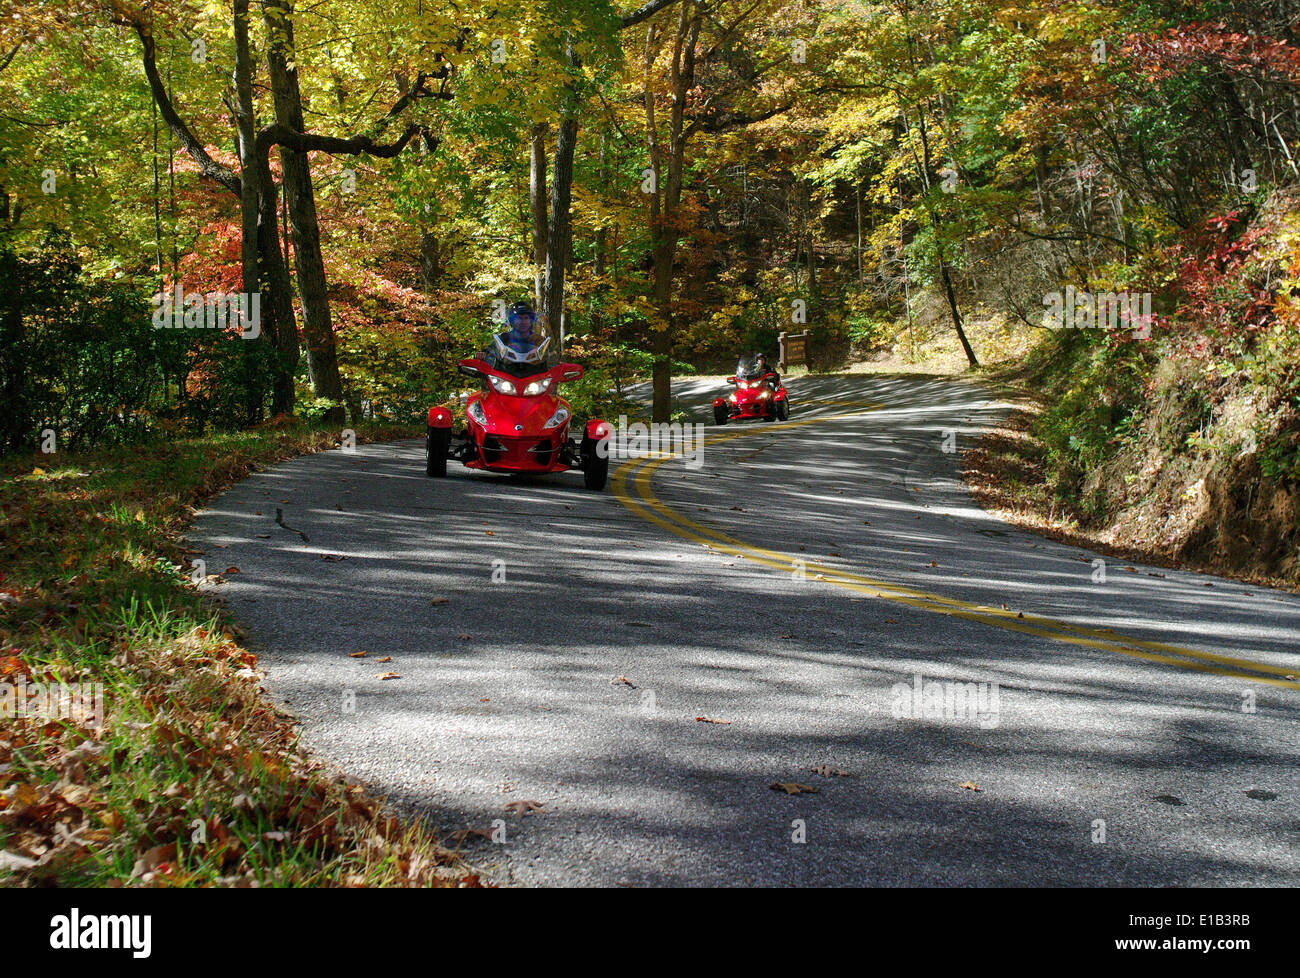 Two Can-Am motorized tricycles ride in the Sosbee Cove area, on Georgia's State Road 180, at the peak of Autumn. - Stock Image